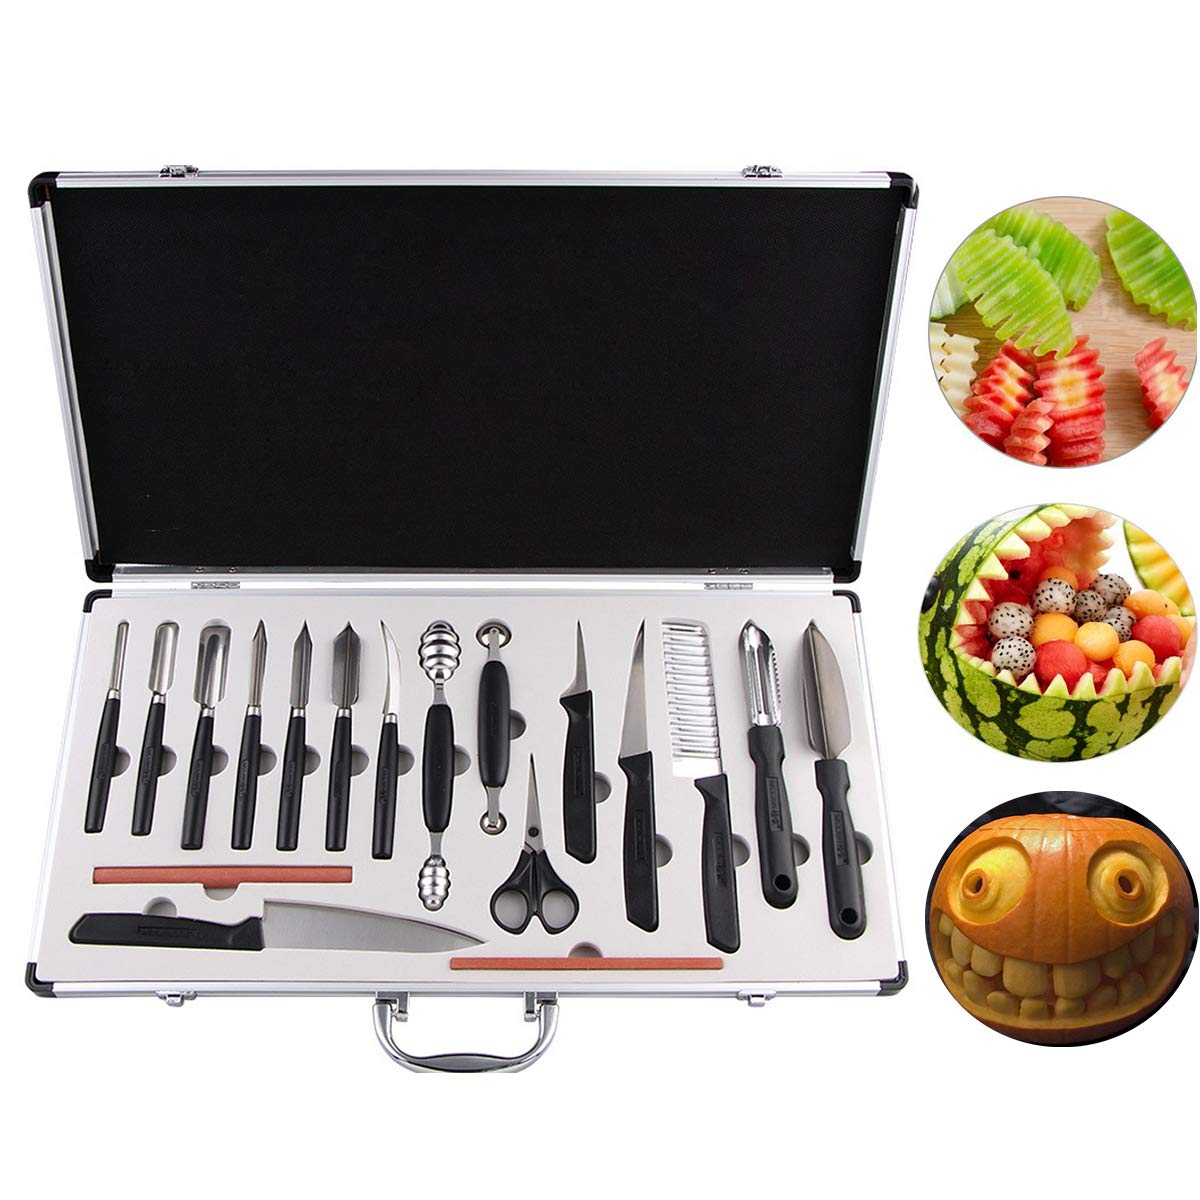 COVVY 18PCS Kitchen Vegetable Food Fruit Cake Carving Knife Set Culinary Carving Peeling Tool Kit/w Portable Carrying Case by COVVY